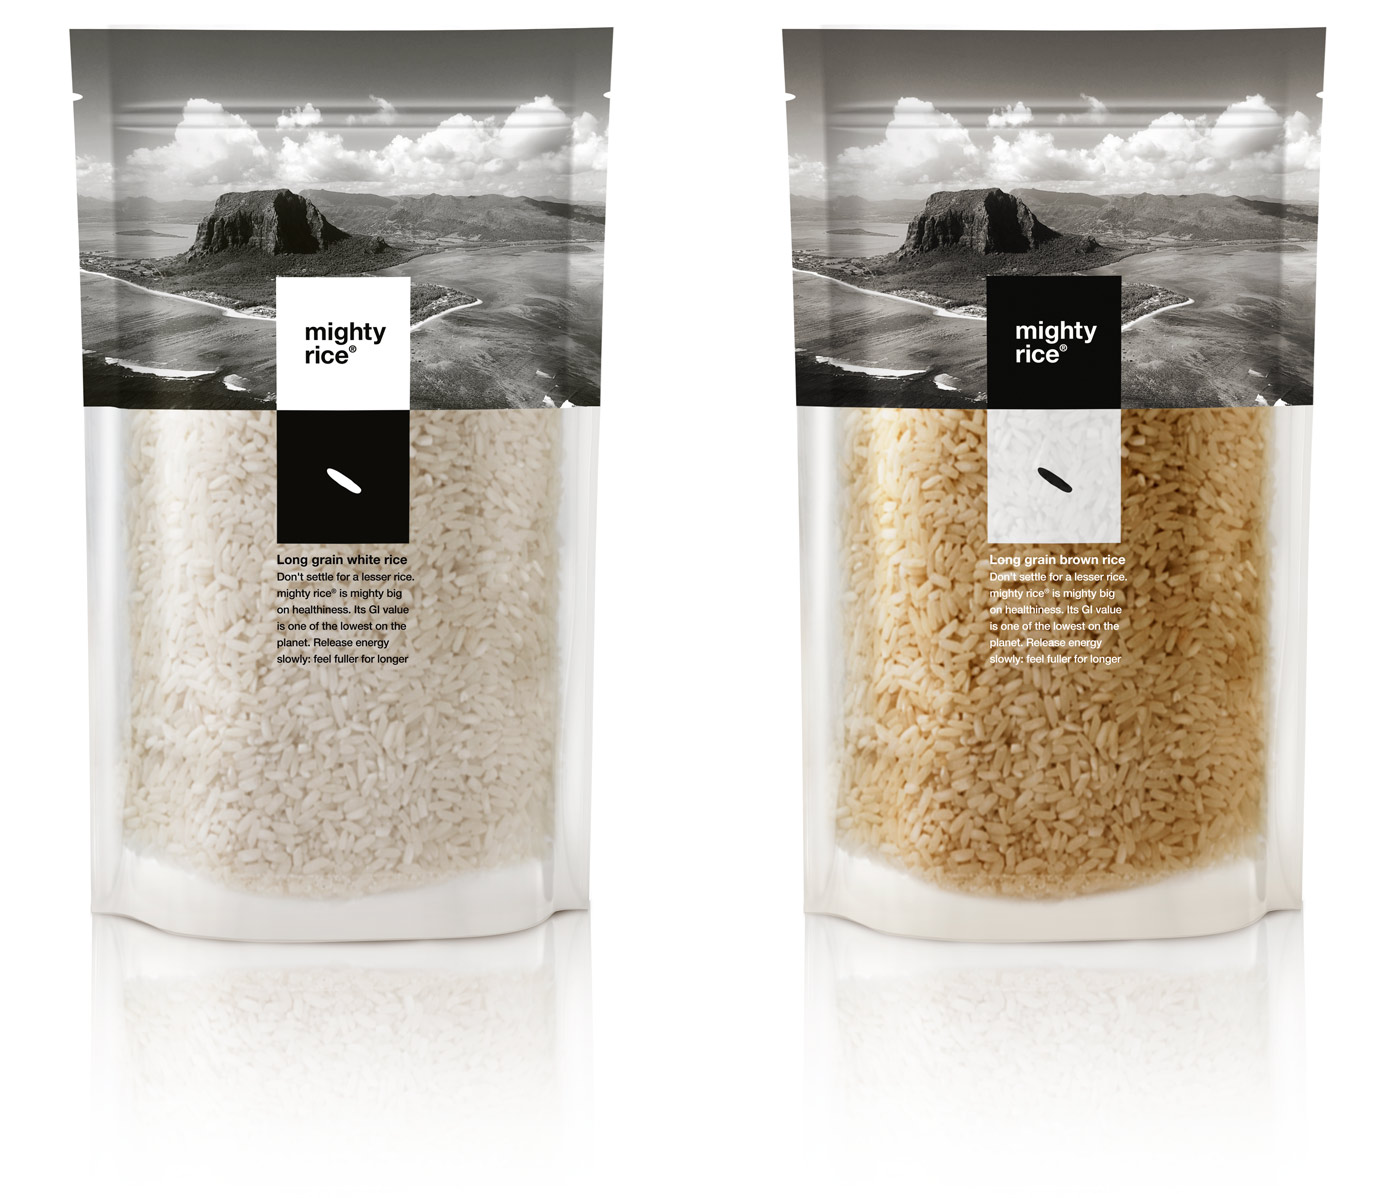 Mighty rice, white and brown